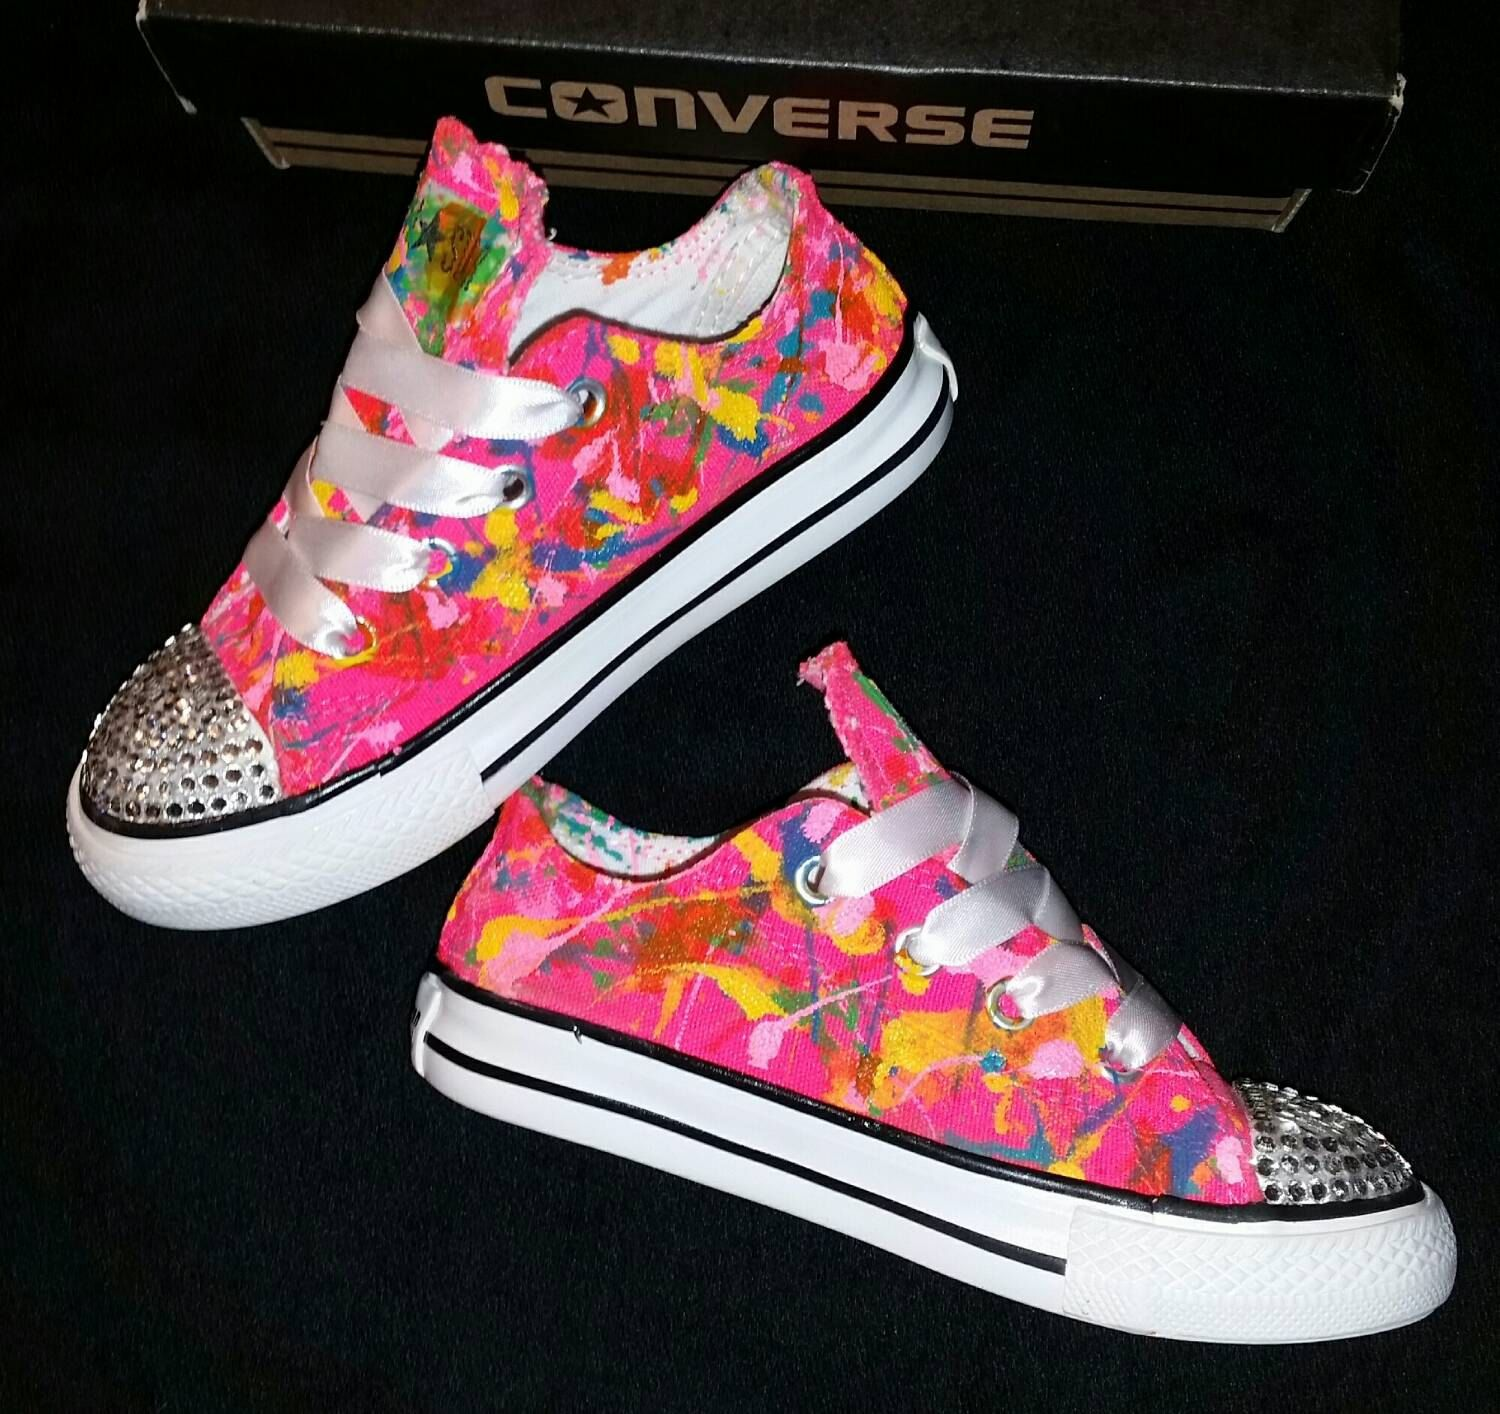 3bf79e12dacb34 Size 8C- Low Top All Star Converse- Hot Pink Splatter Paint Custom Converse-  Crystal Studded Toe- Kids- Toddler- Girls- Ready to Ship by DivineKidz on  Etsy